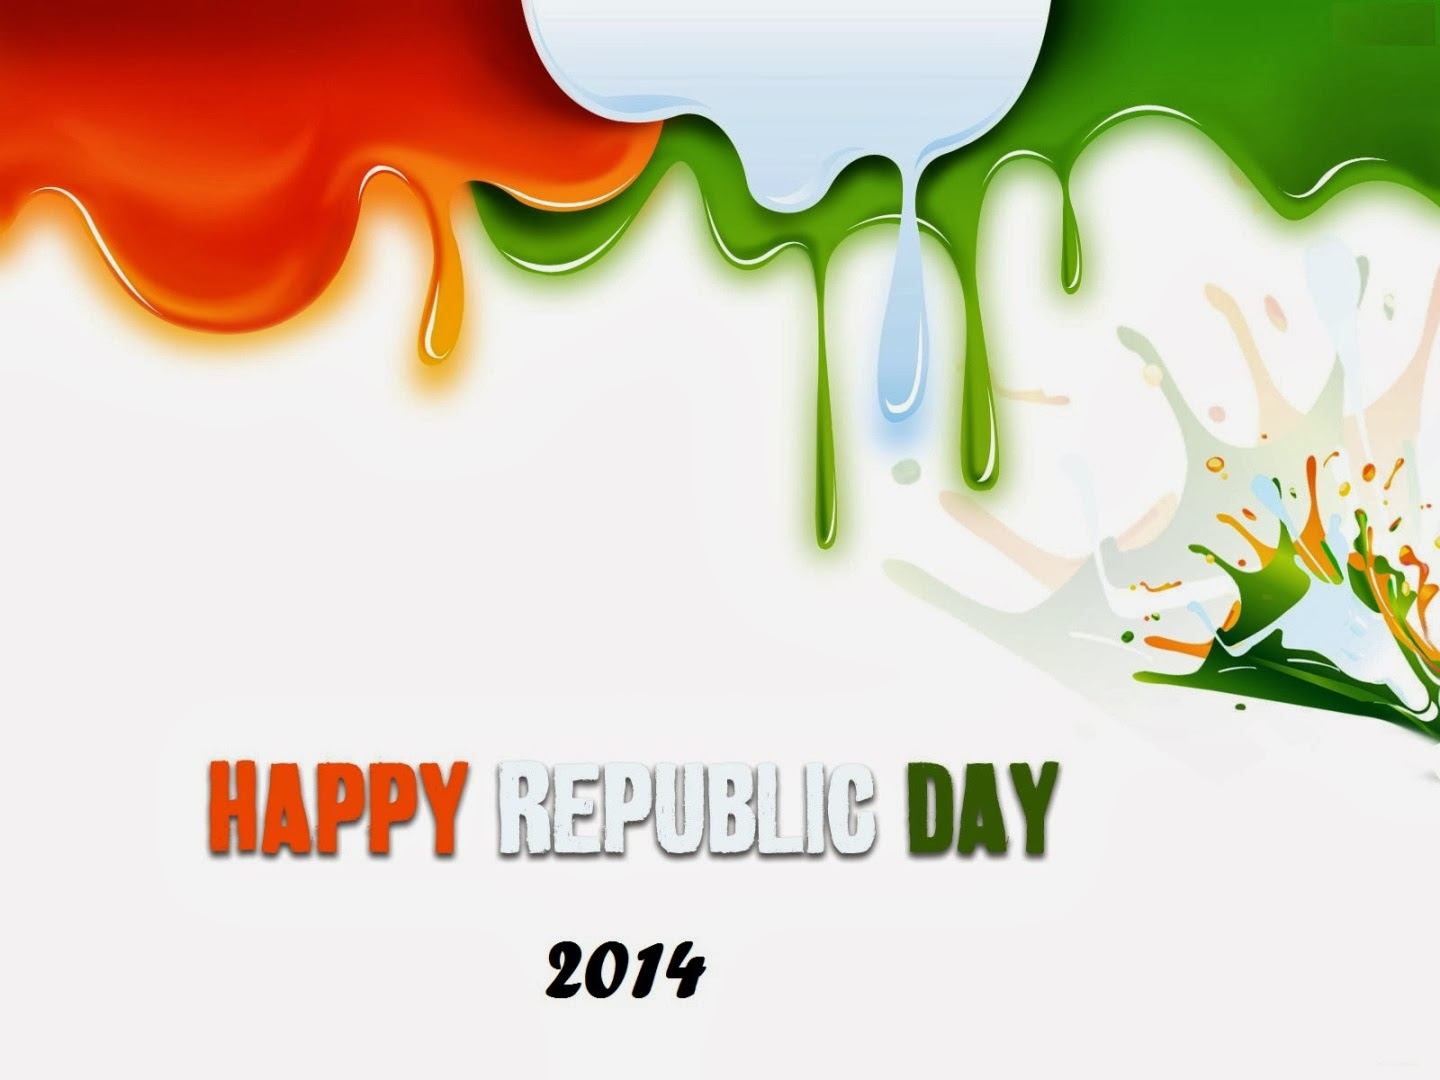 65th Republic Day of India | Happy Republic Day